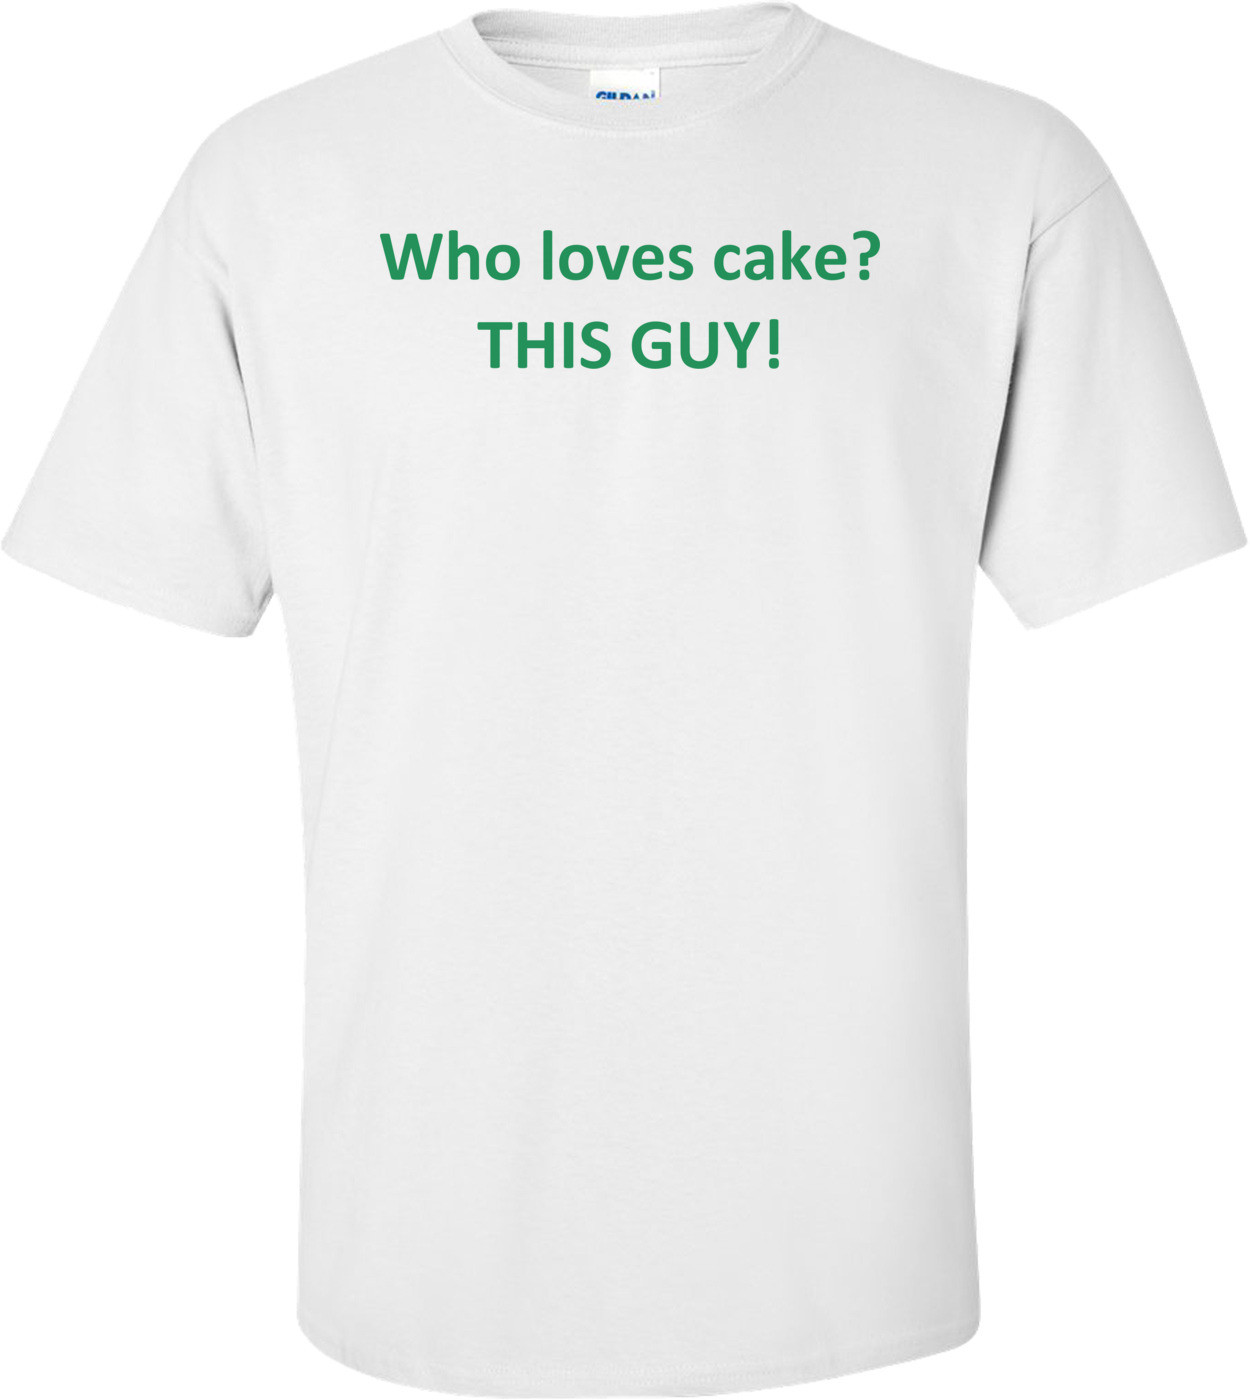 Who loves cake? THIS GUY! Shirt